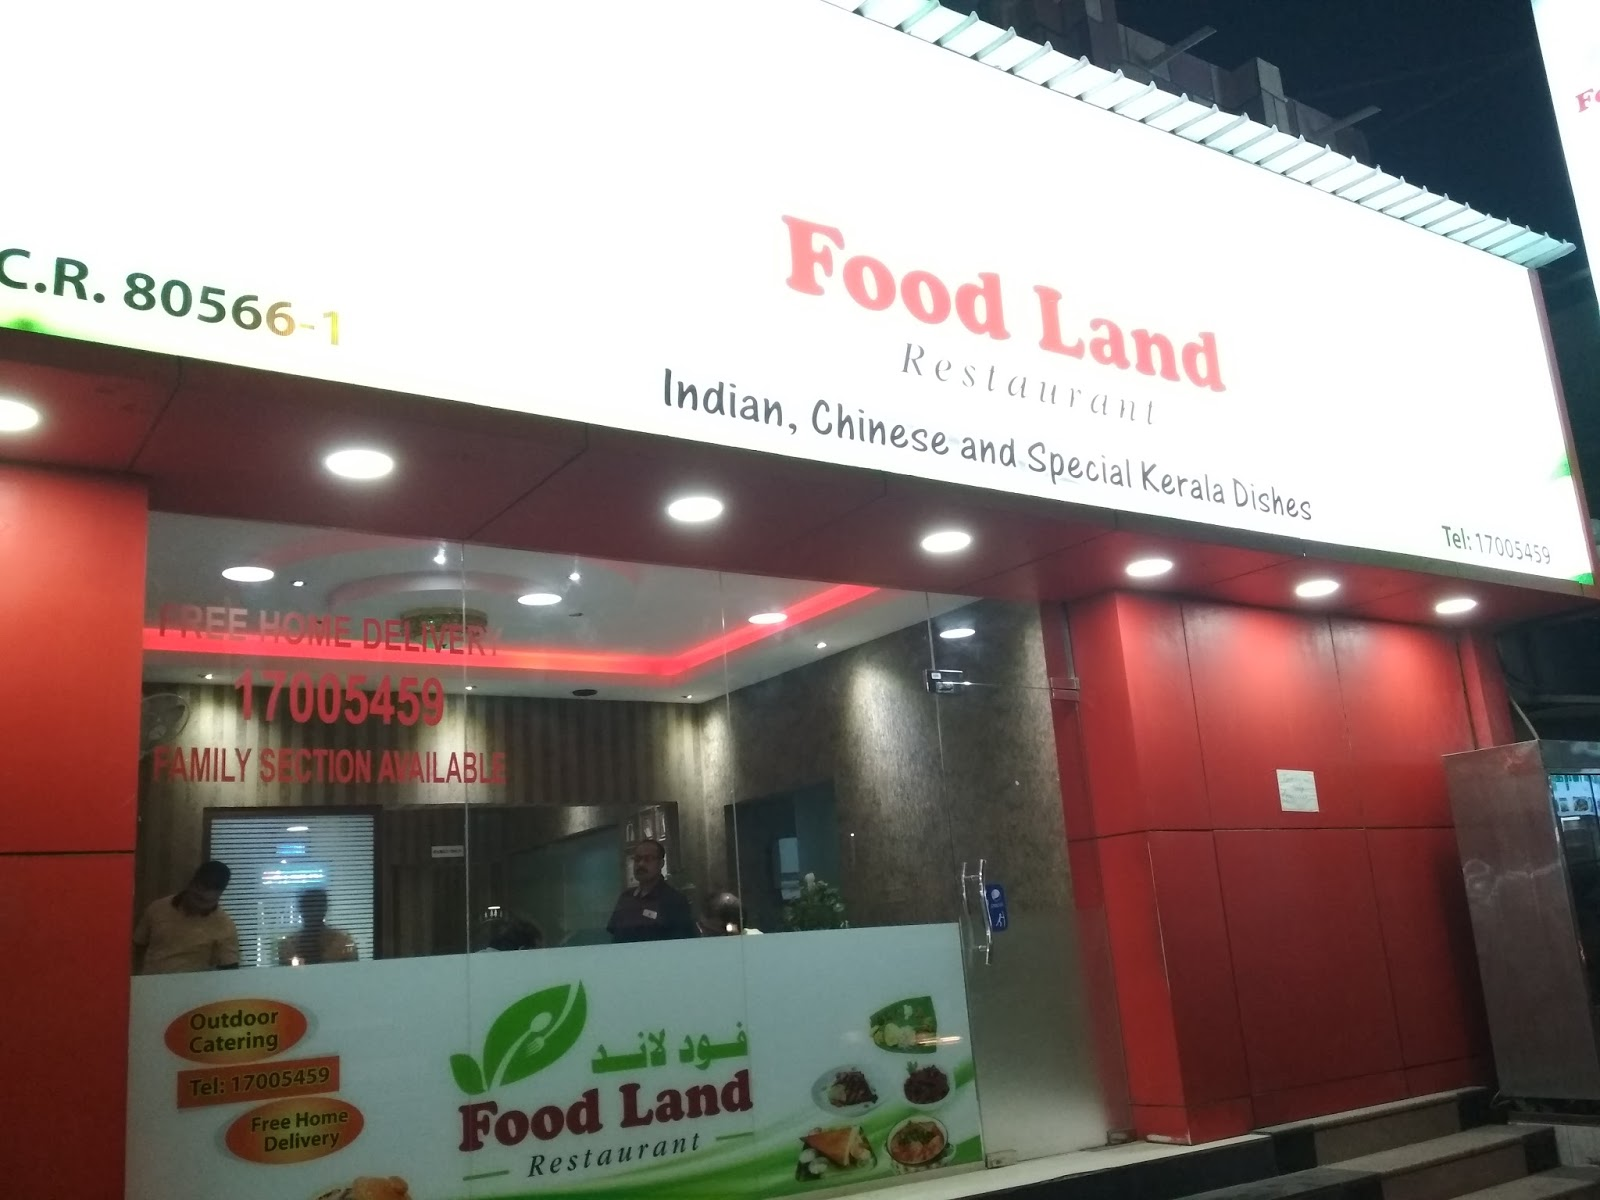 Best things to do in Bahrain: Indian restaurants in Bahrain